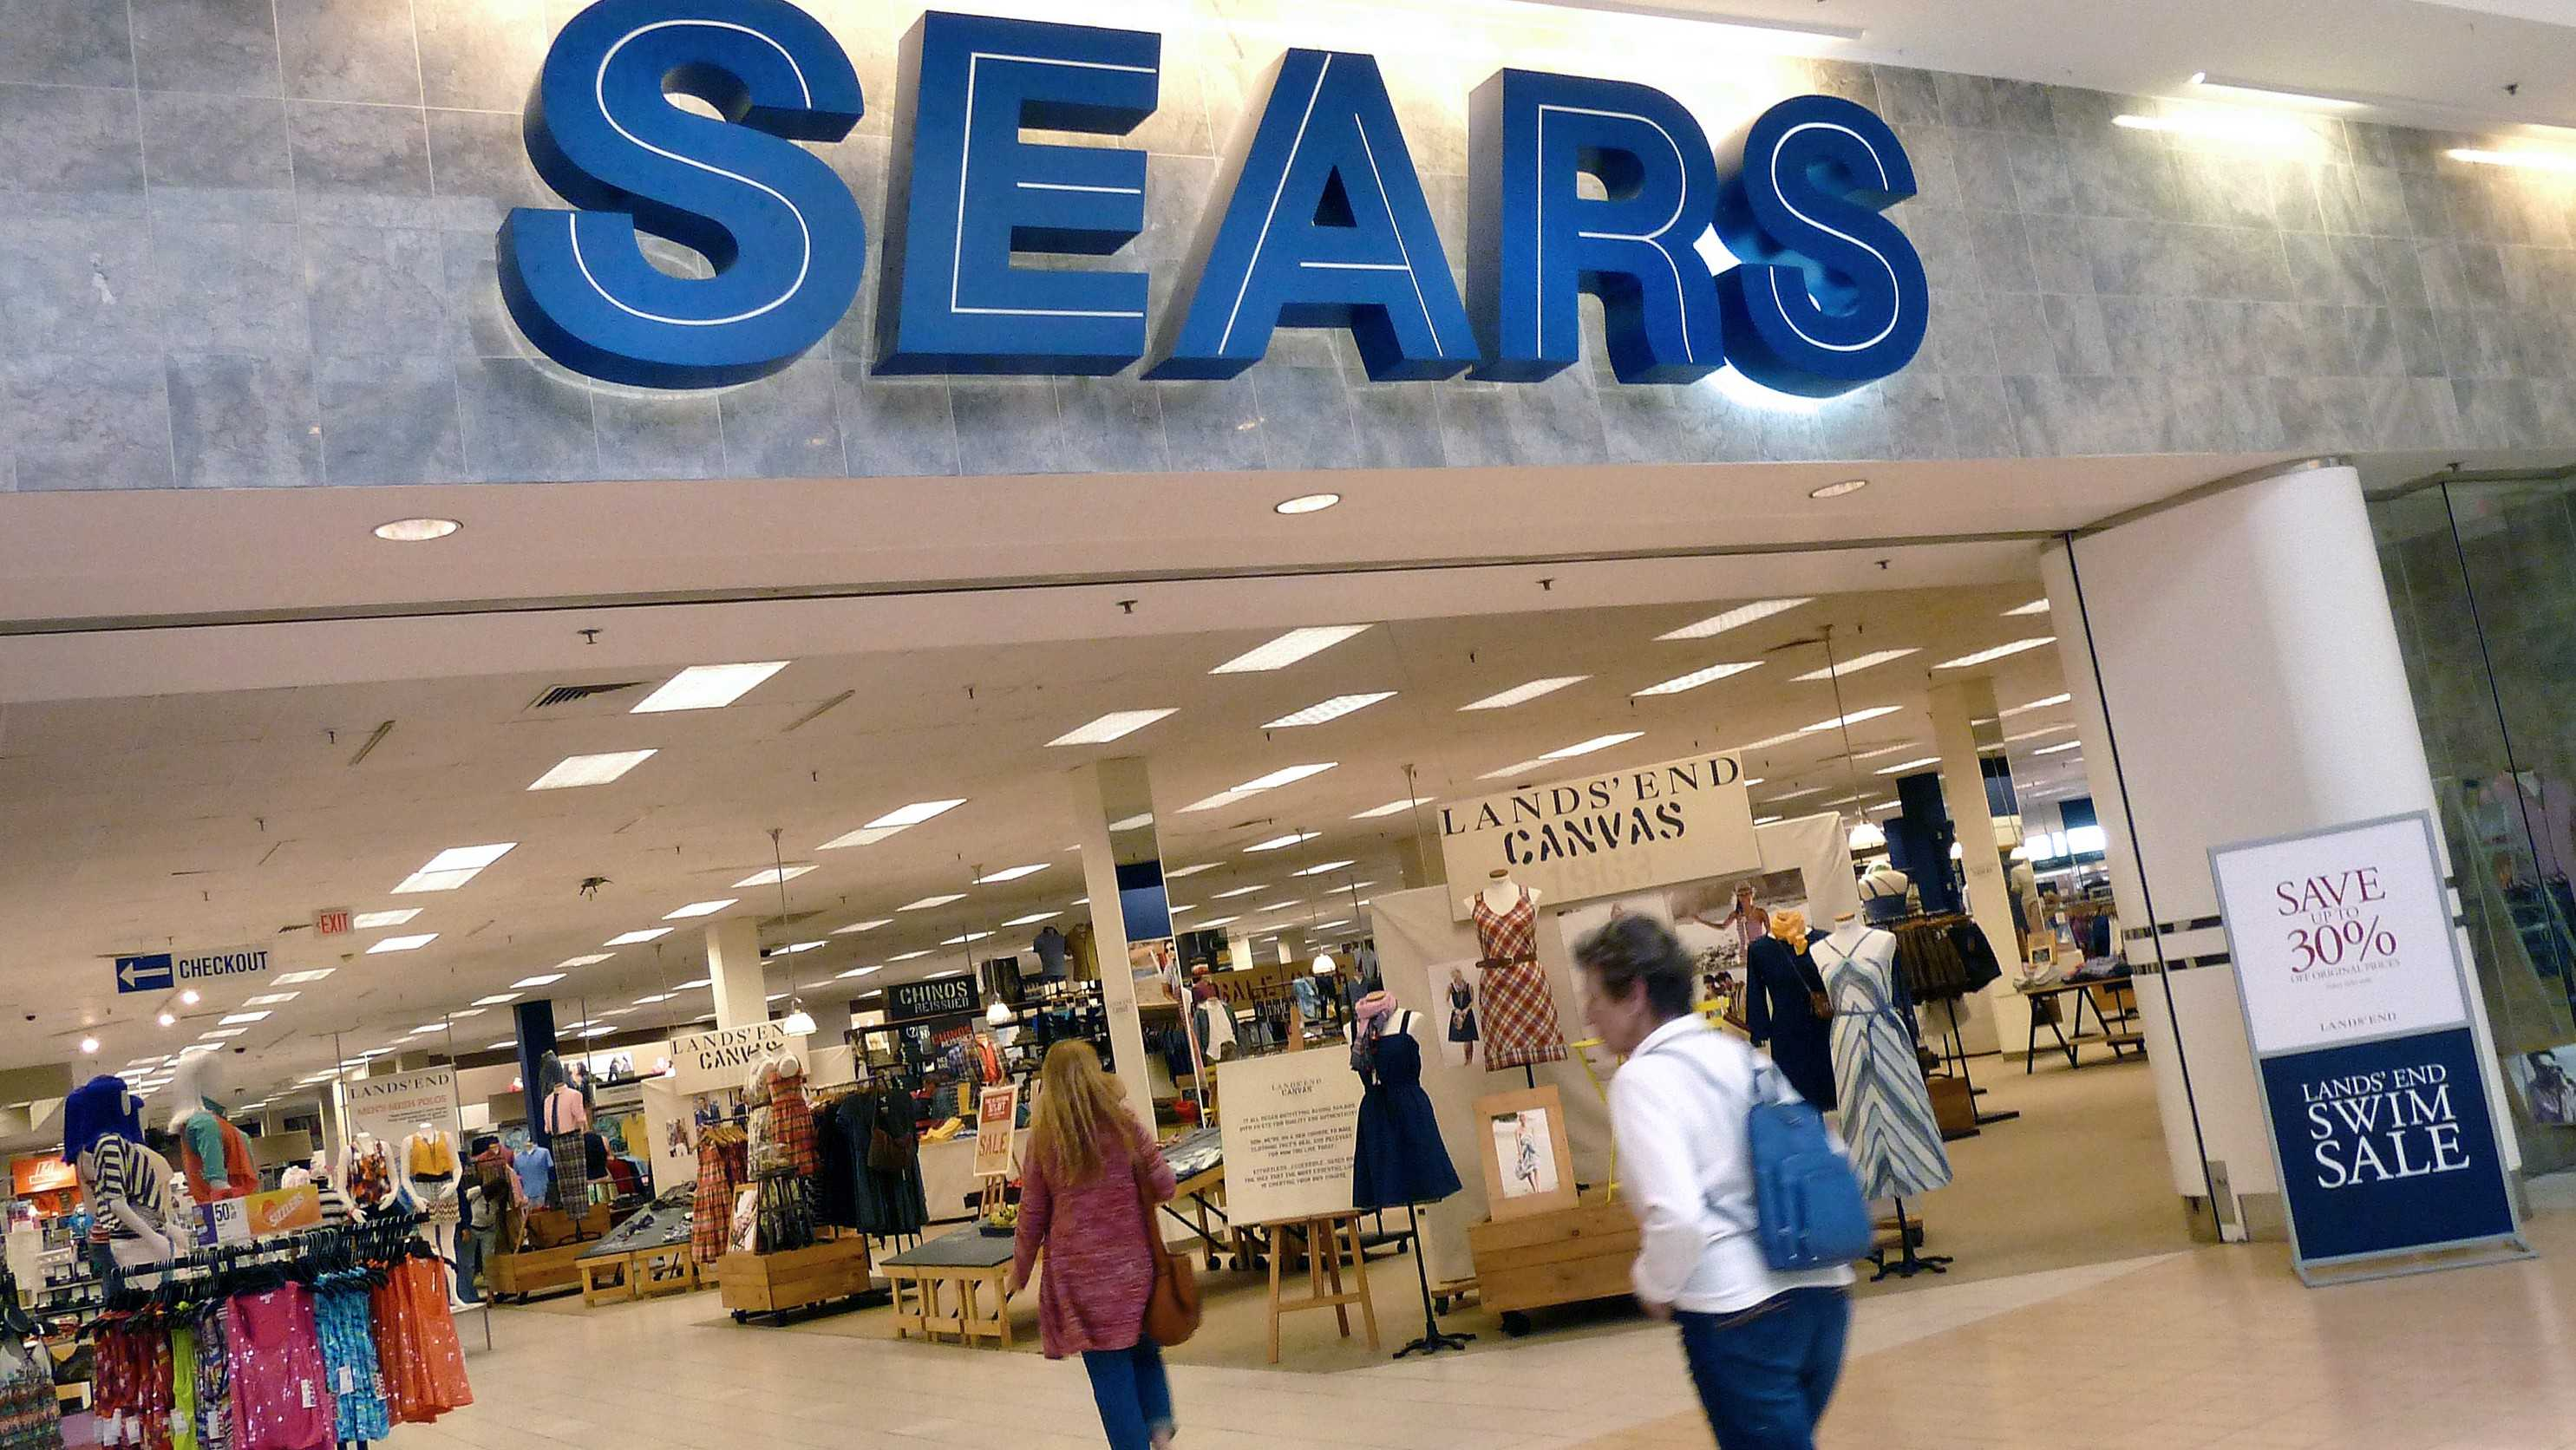 sears near me, sears locations